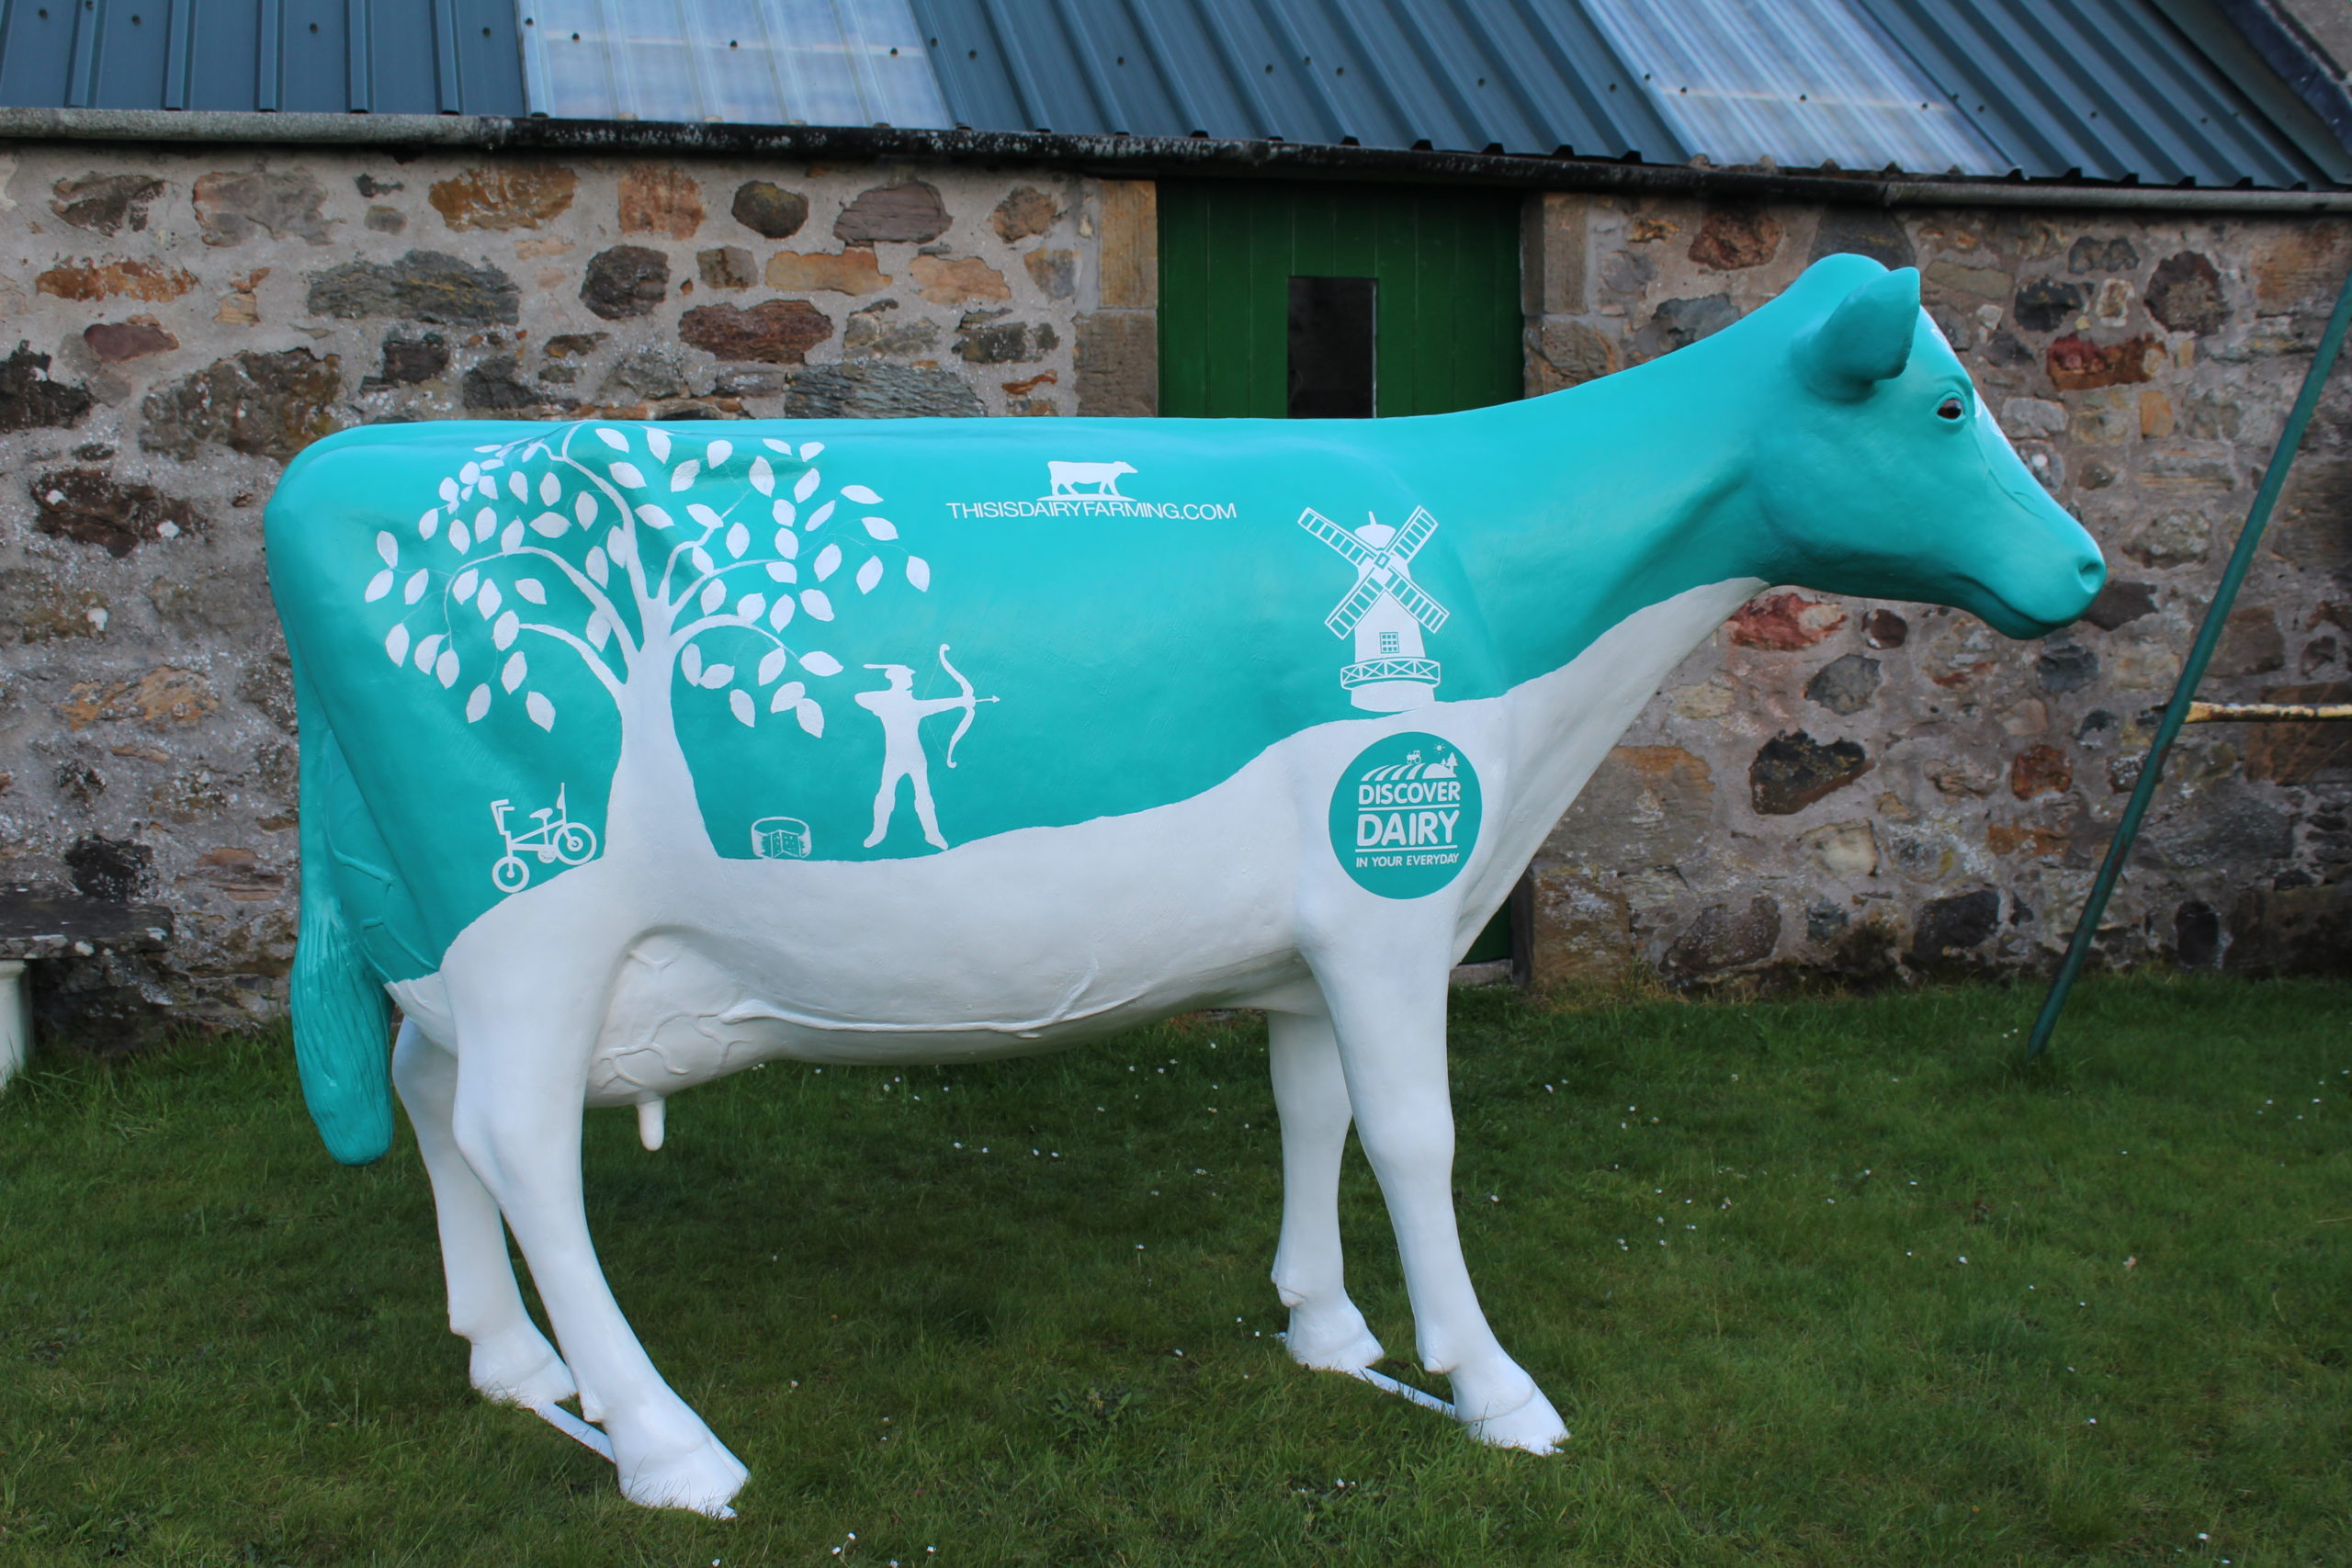 Discover Dairy Cow Model Statue